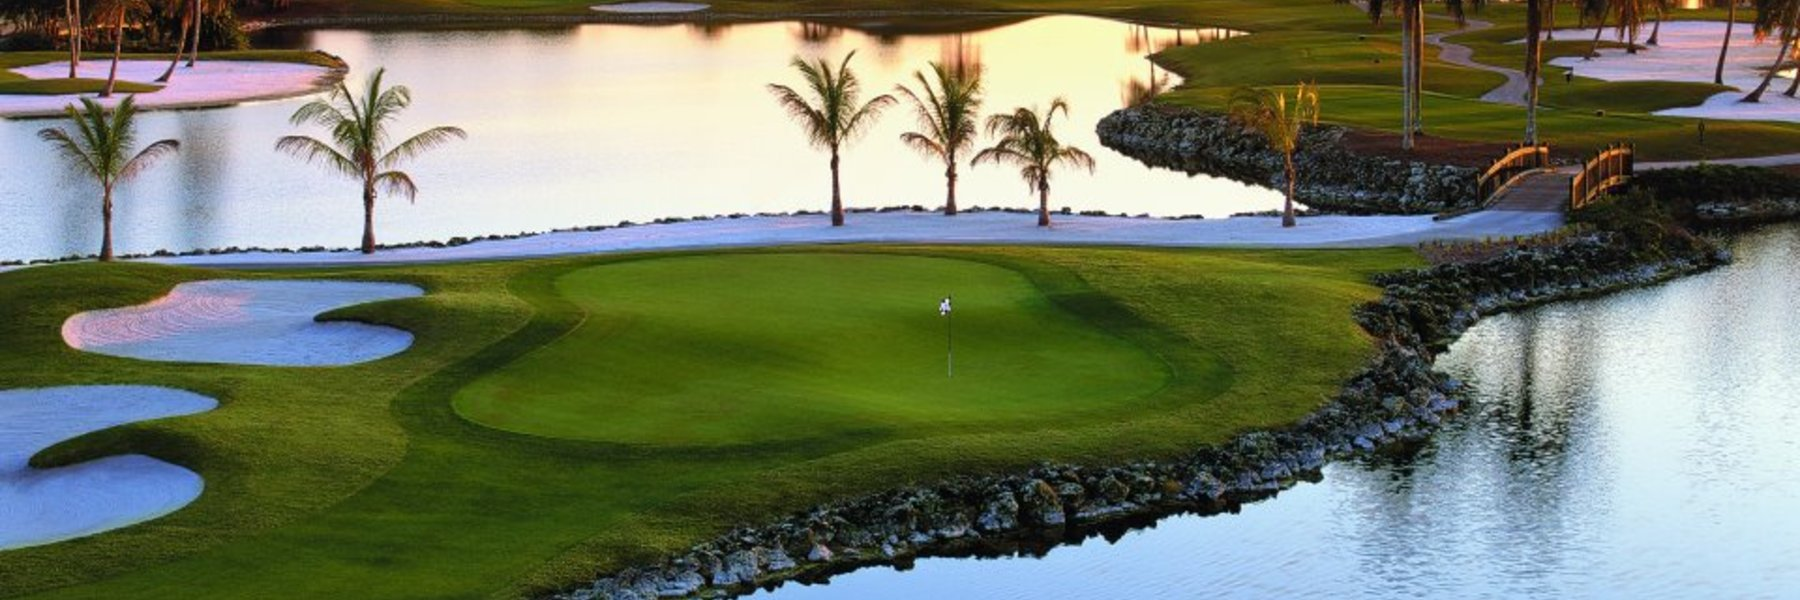 Golf Vacation Package - Naples Upscale Resort Summer Golf Package $141 per day!